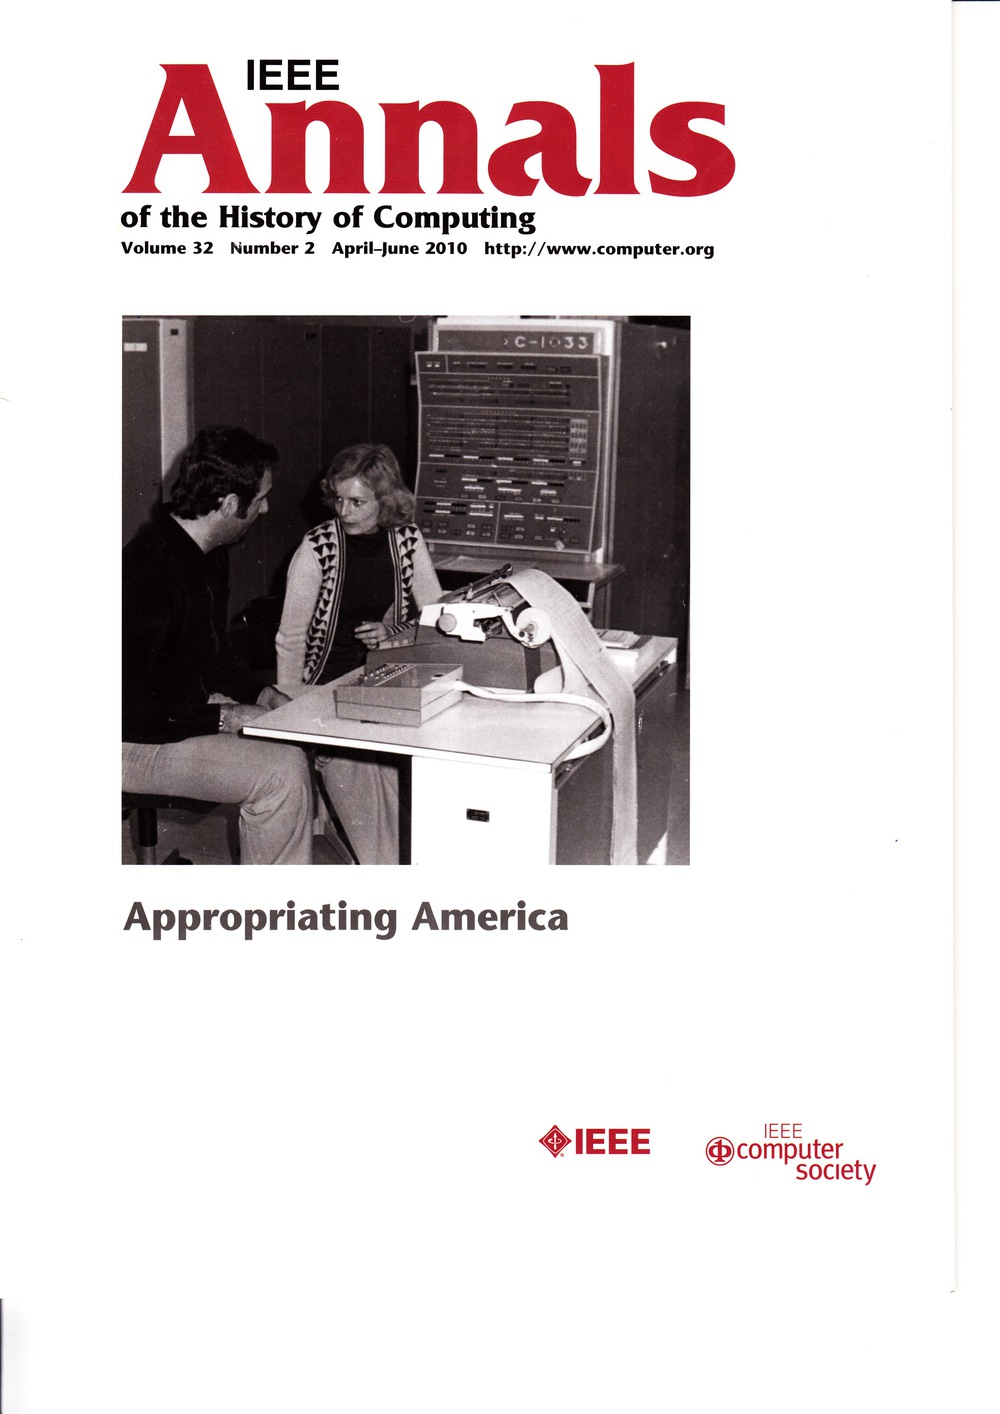 Scan of Document: IEEE Annals of the History of Computing - April-June 2010